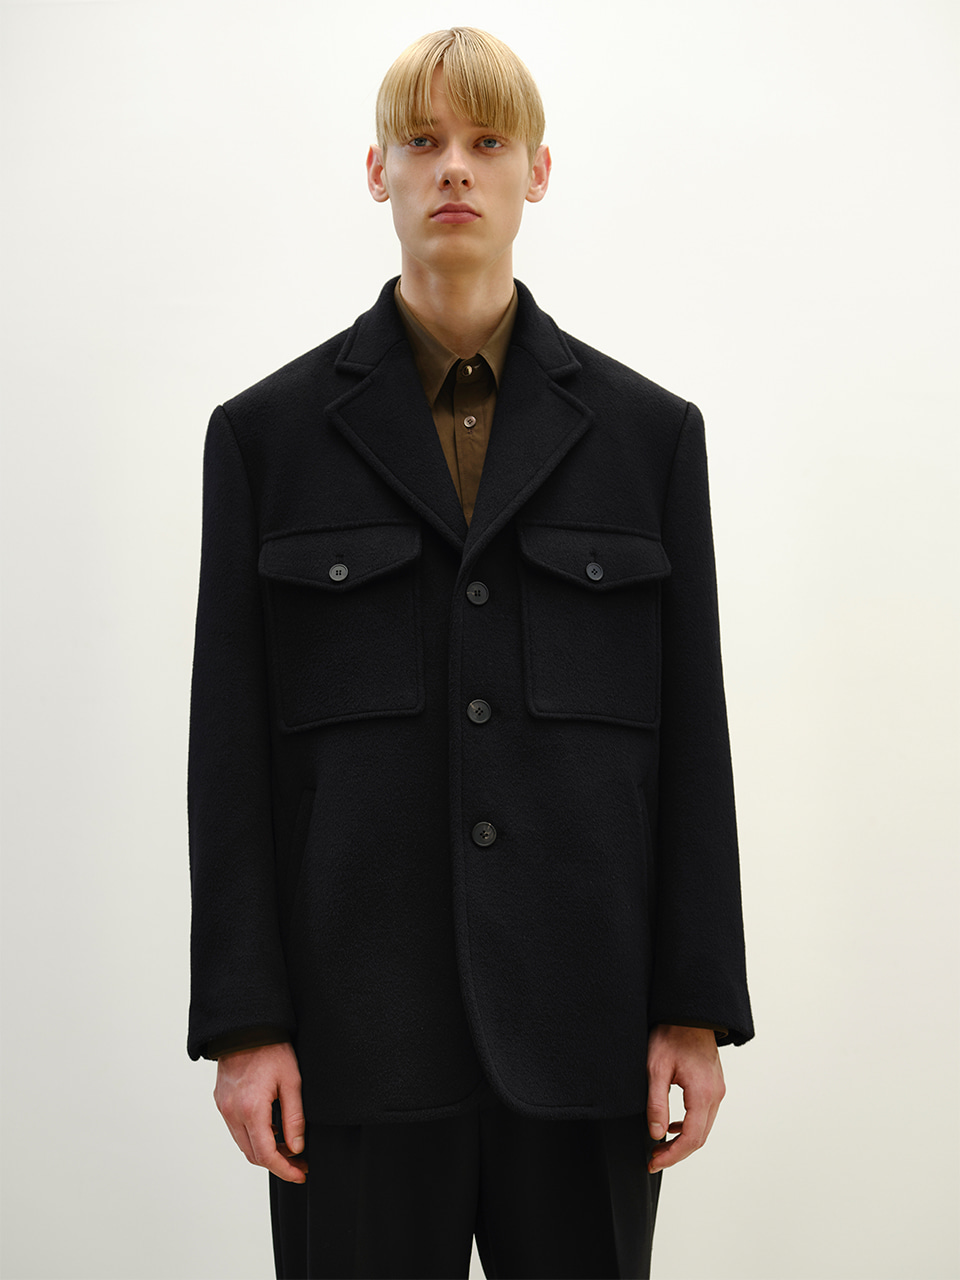 [FW20] FLAP POCKET BLAZER COAT(Black) IEY [FW20] FLAP POCKET BLAZER COAT(Black)